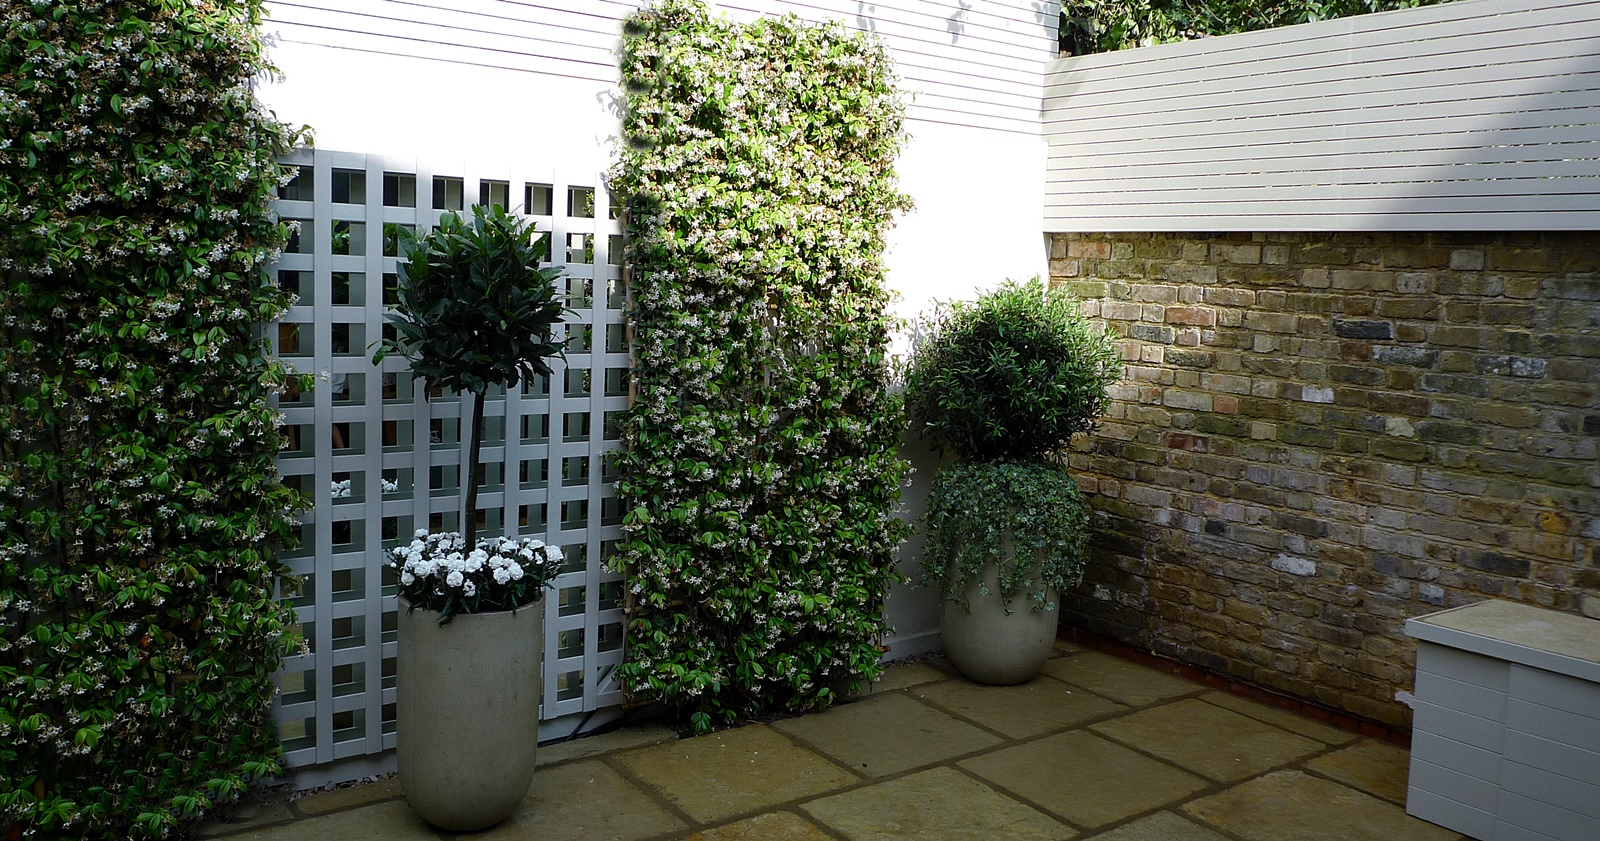 Garden Design Minimalist : Courtyard minimalist contemporary garden design and designer dulwich ...